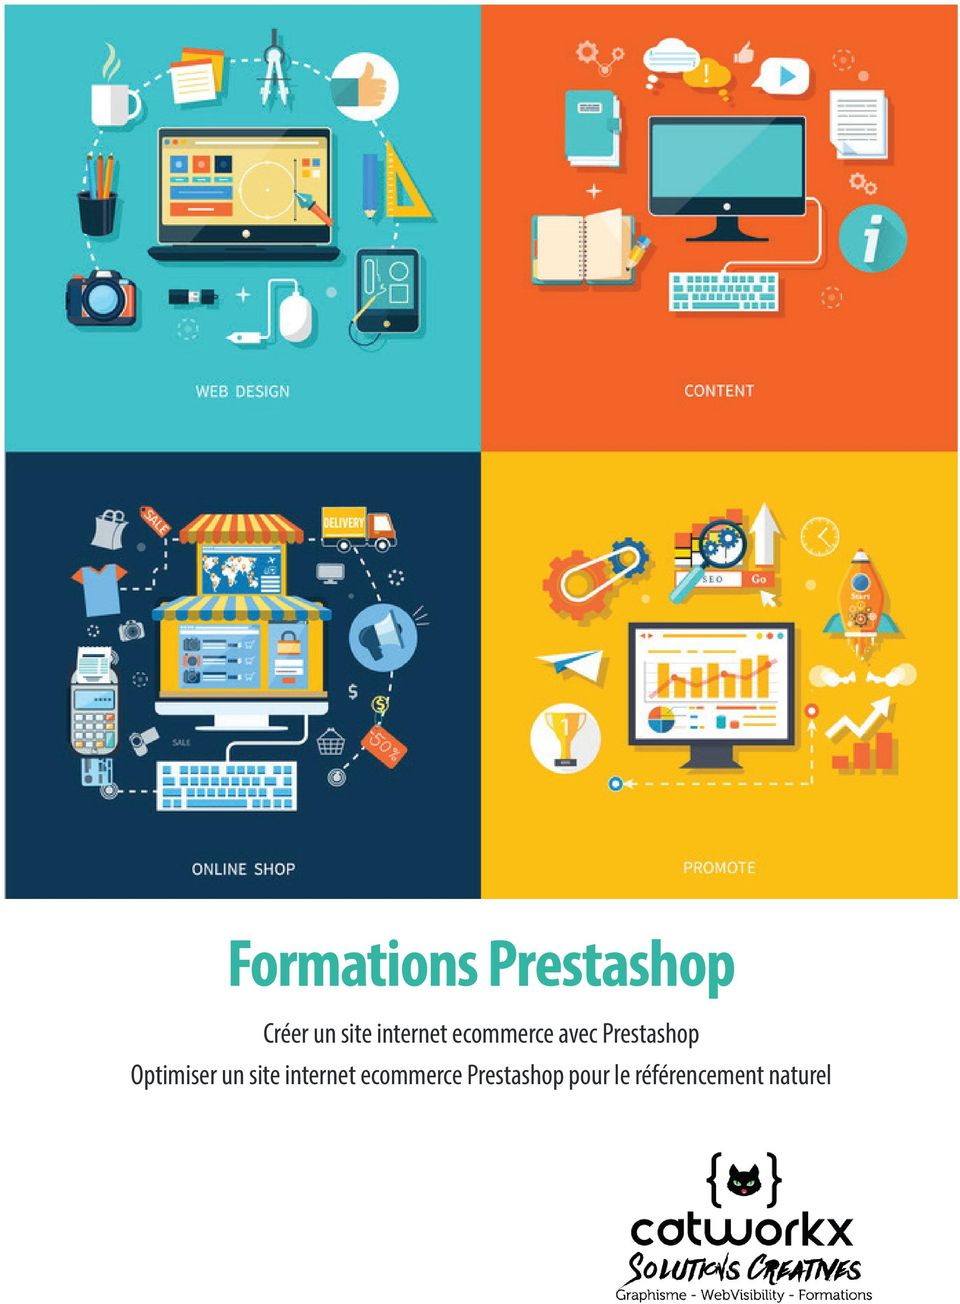 Optimiser un site internet ecommerce